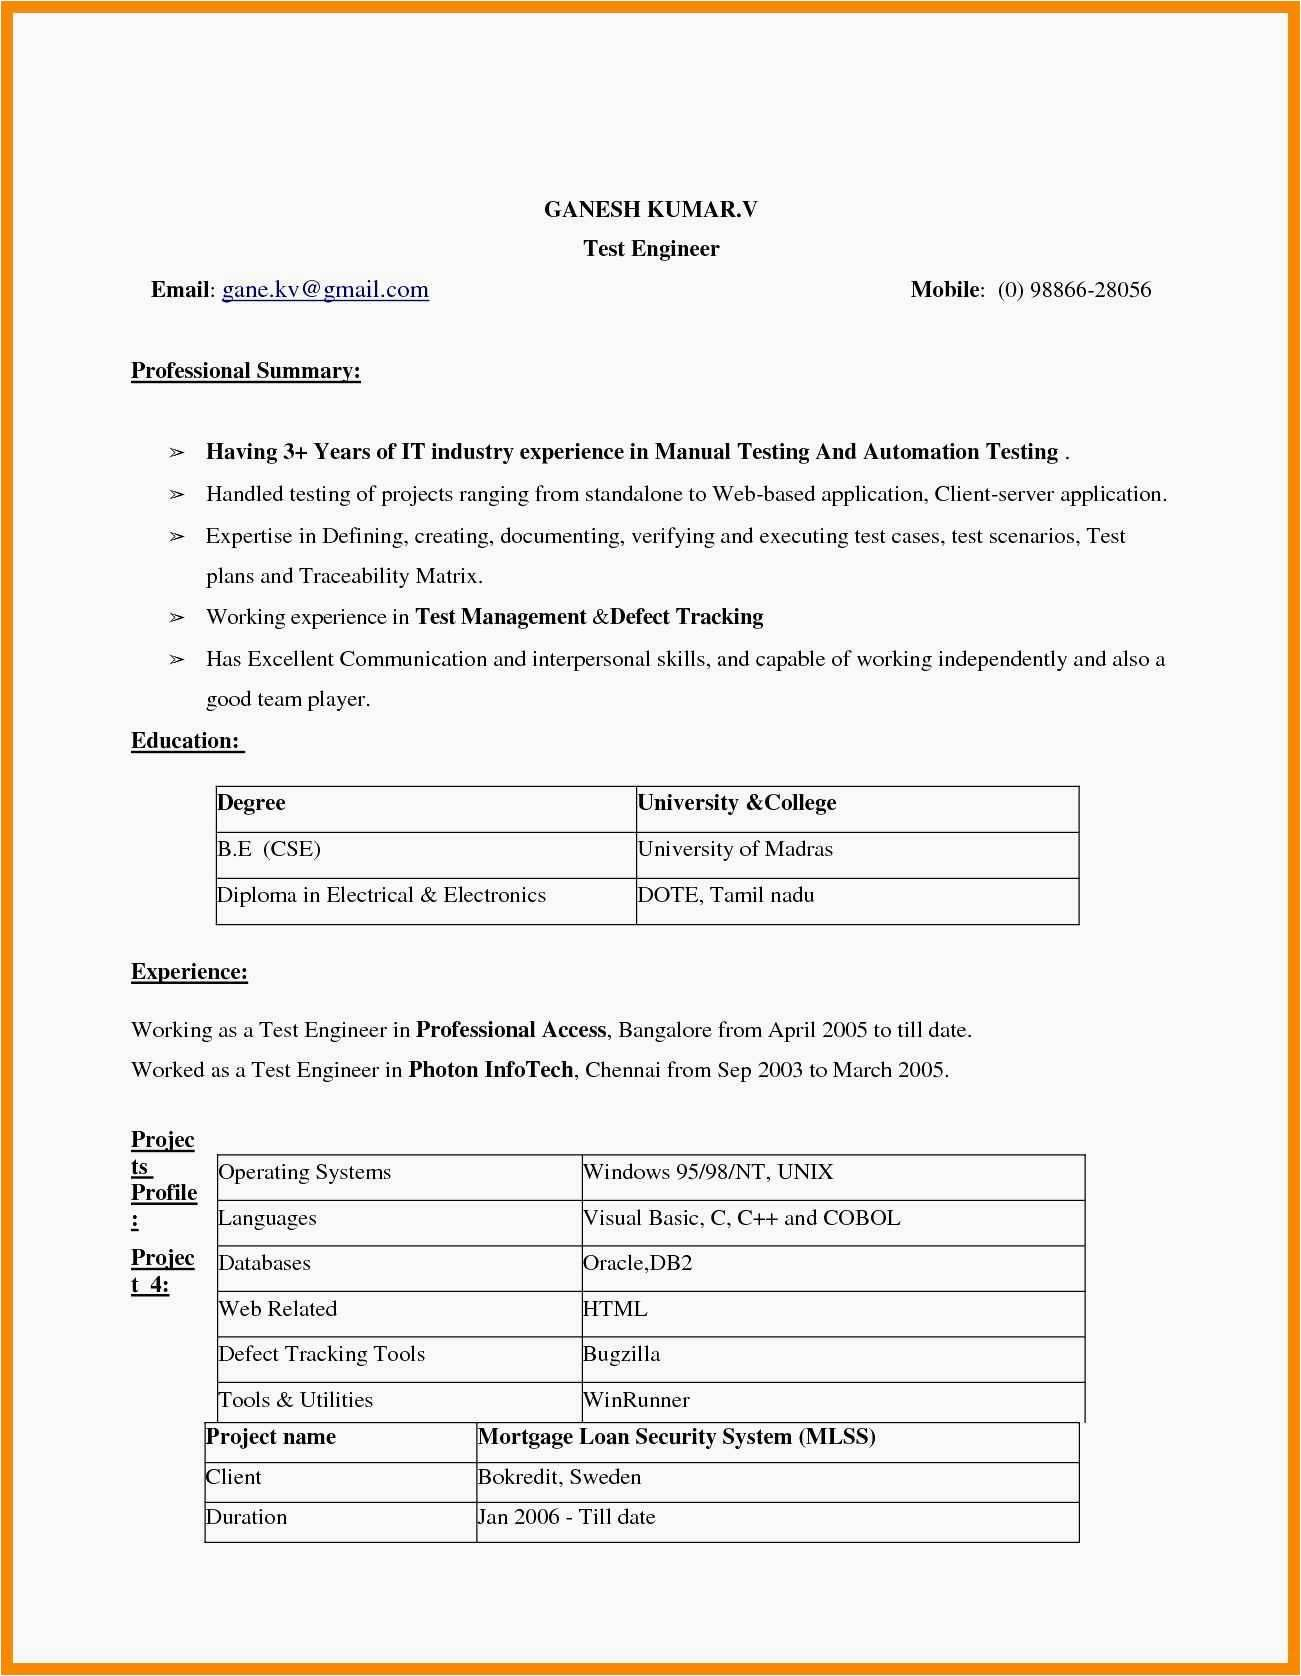 Resume Templates Word 2007 - How to Make A Resume Word 2007 Refrence Resume Templates Word